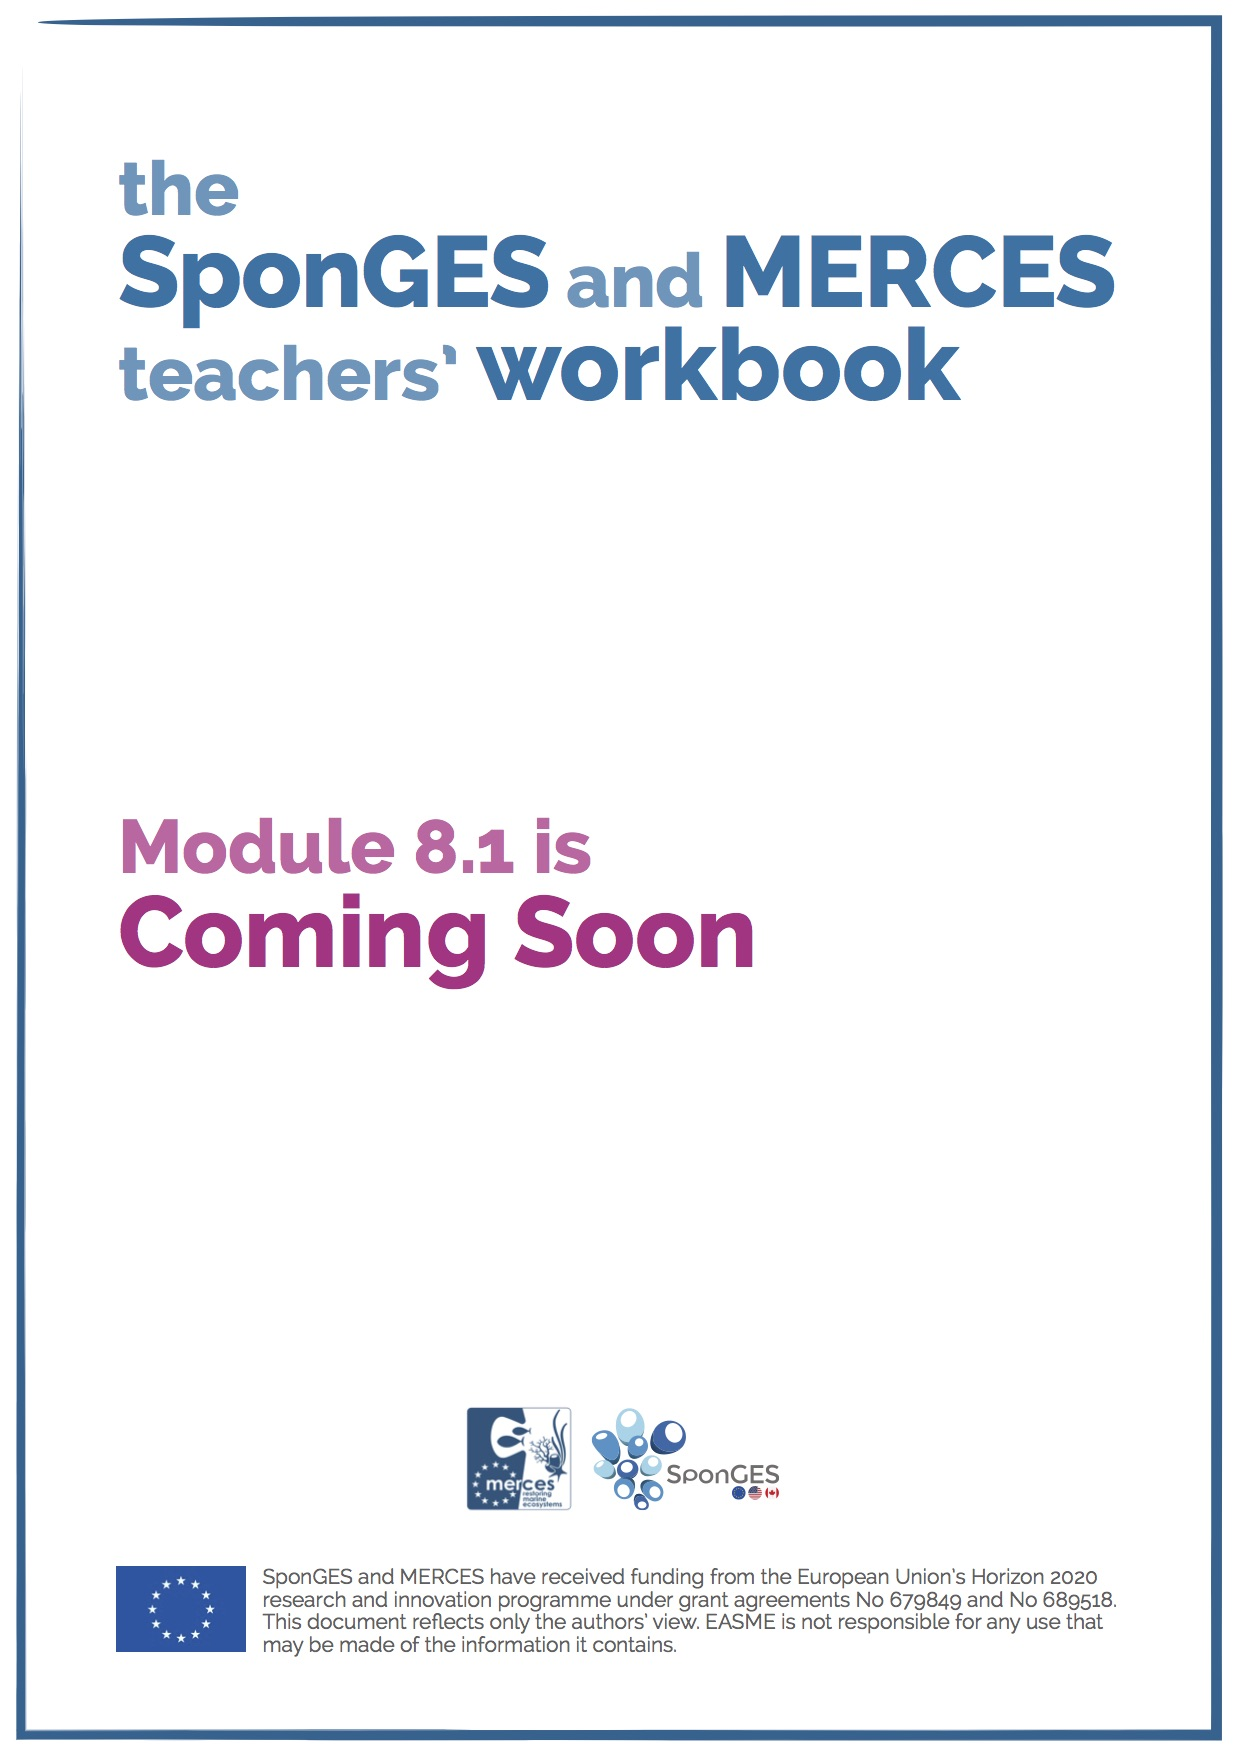 Module 8.1 of the SponGES and MERCES teachers' workbook